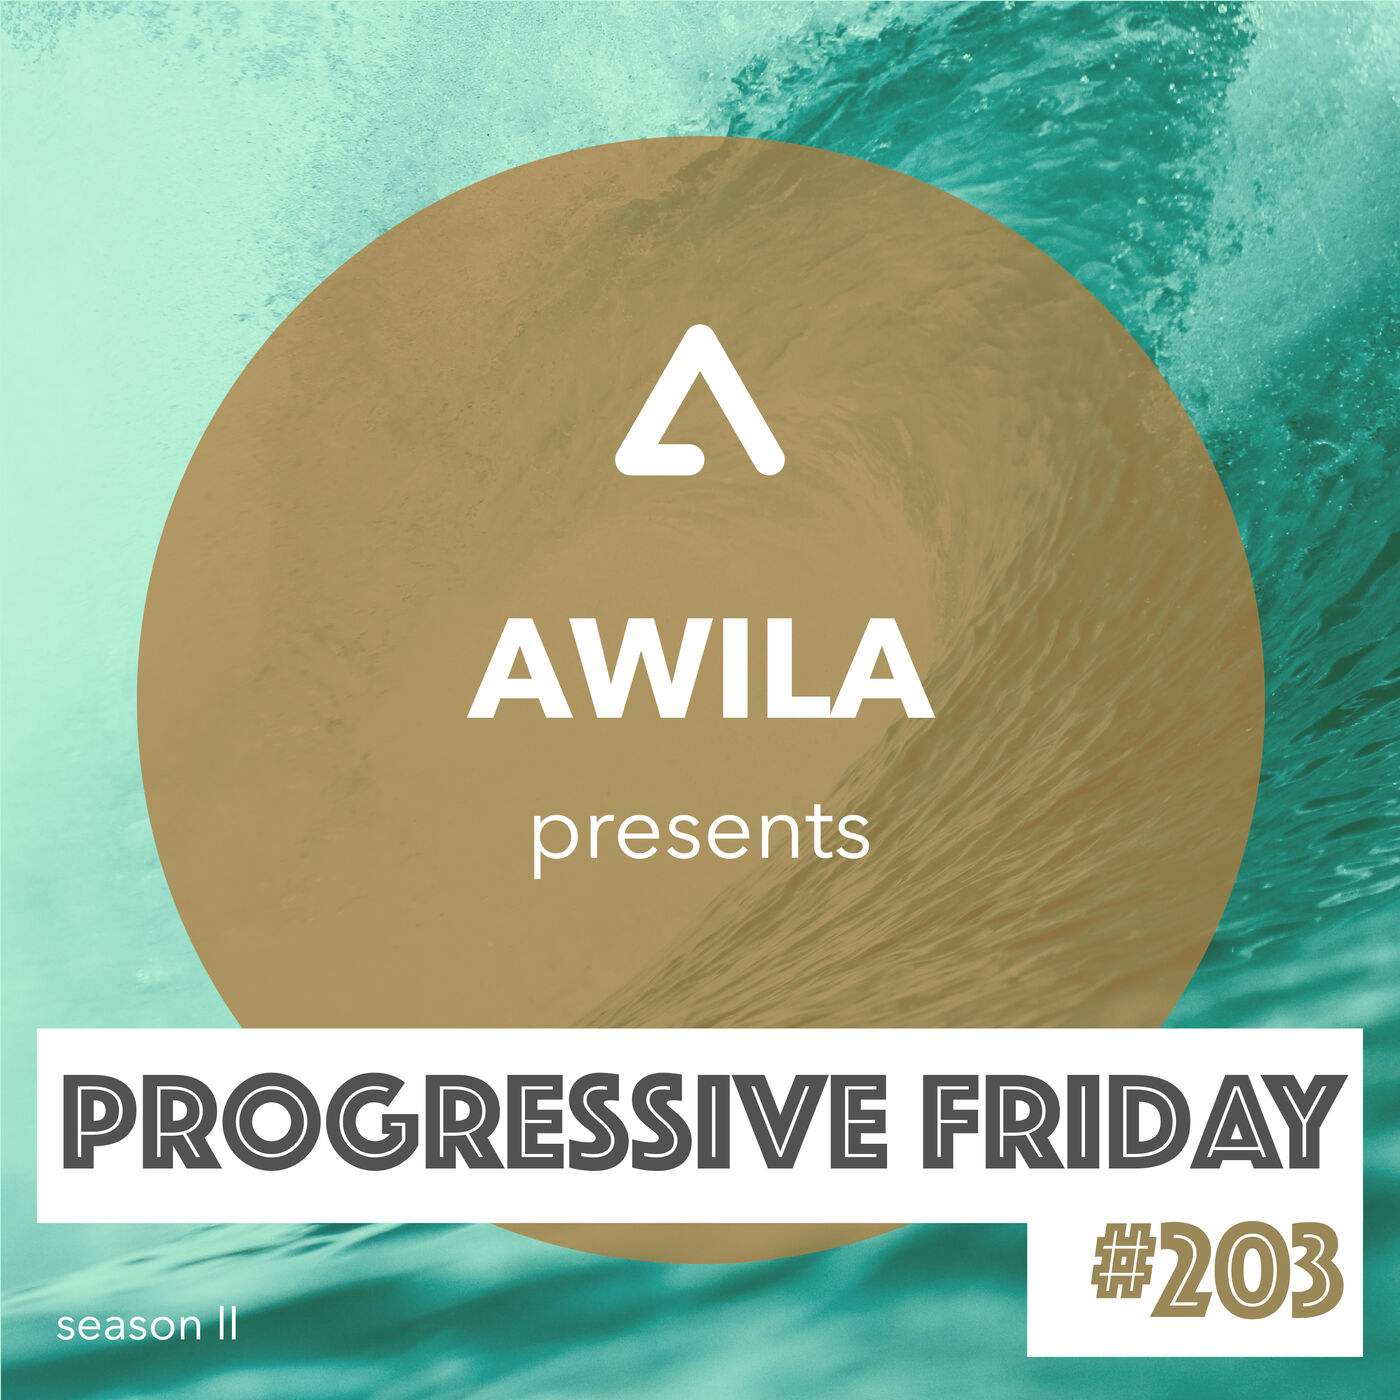 Progressive Friday #203